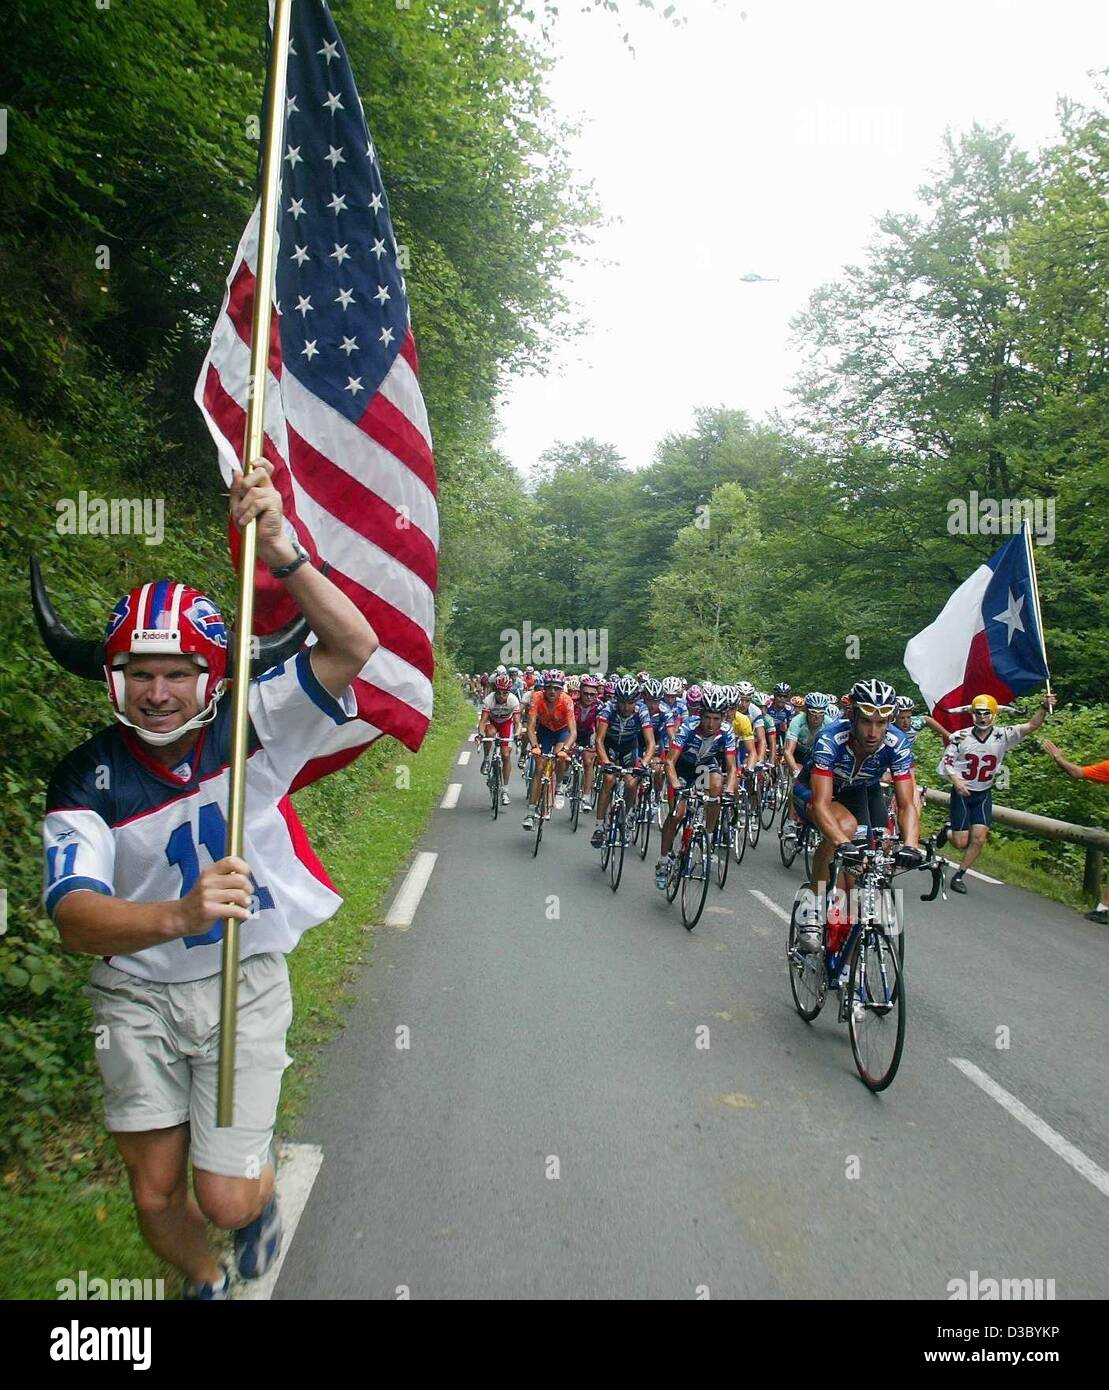 dpa) - Spectators carry US (L) and Texan (R) flags as they run along